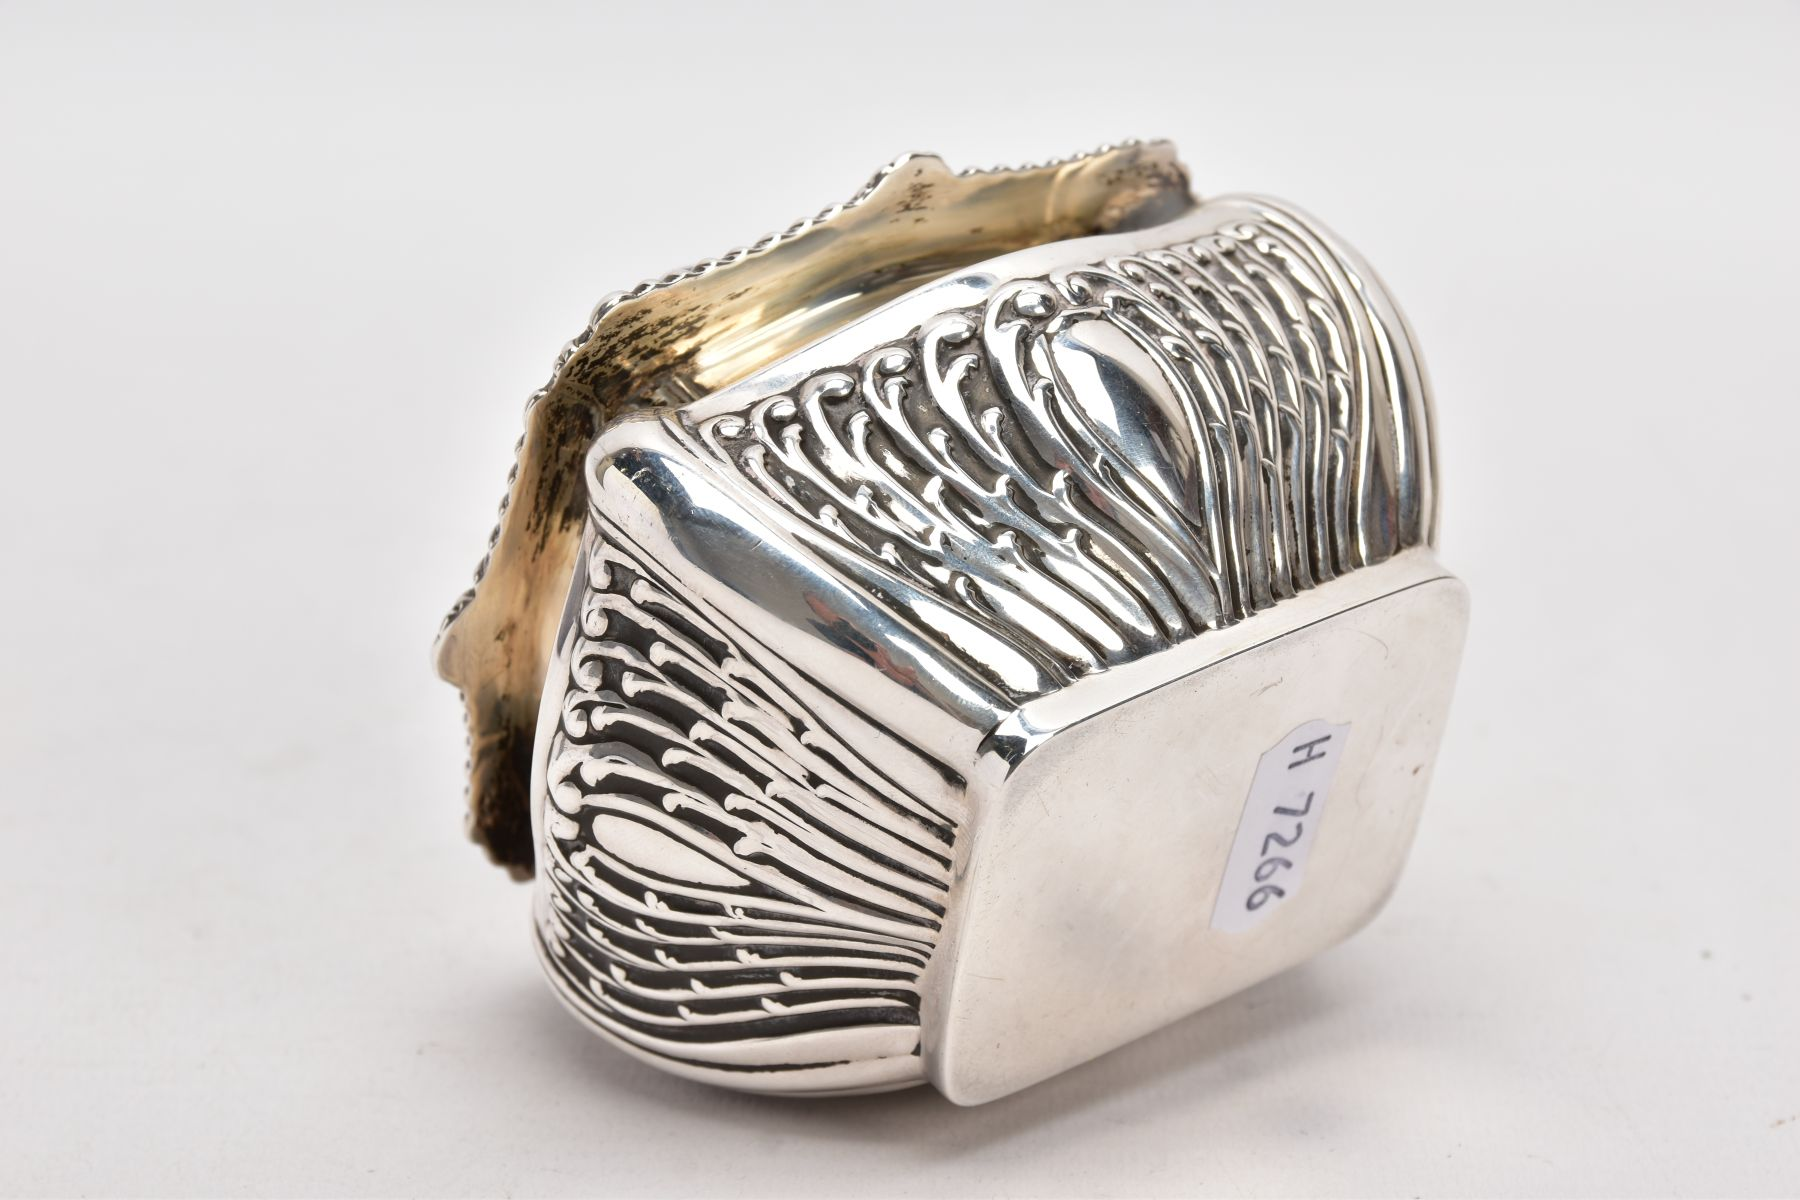 AN EDWARDIAN SILVER TEA CADDY, bomb shaped sucrier with hinged cover, gadrooned and shell cast - Image 6 of 6